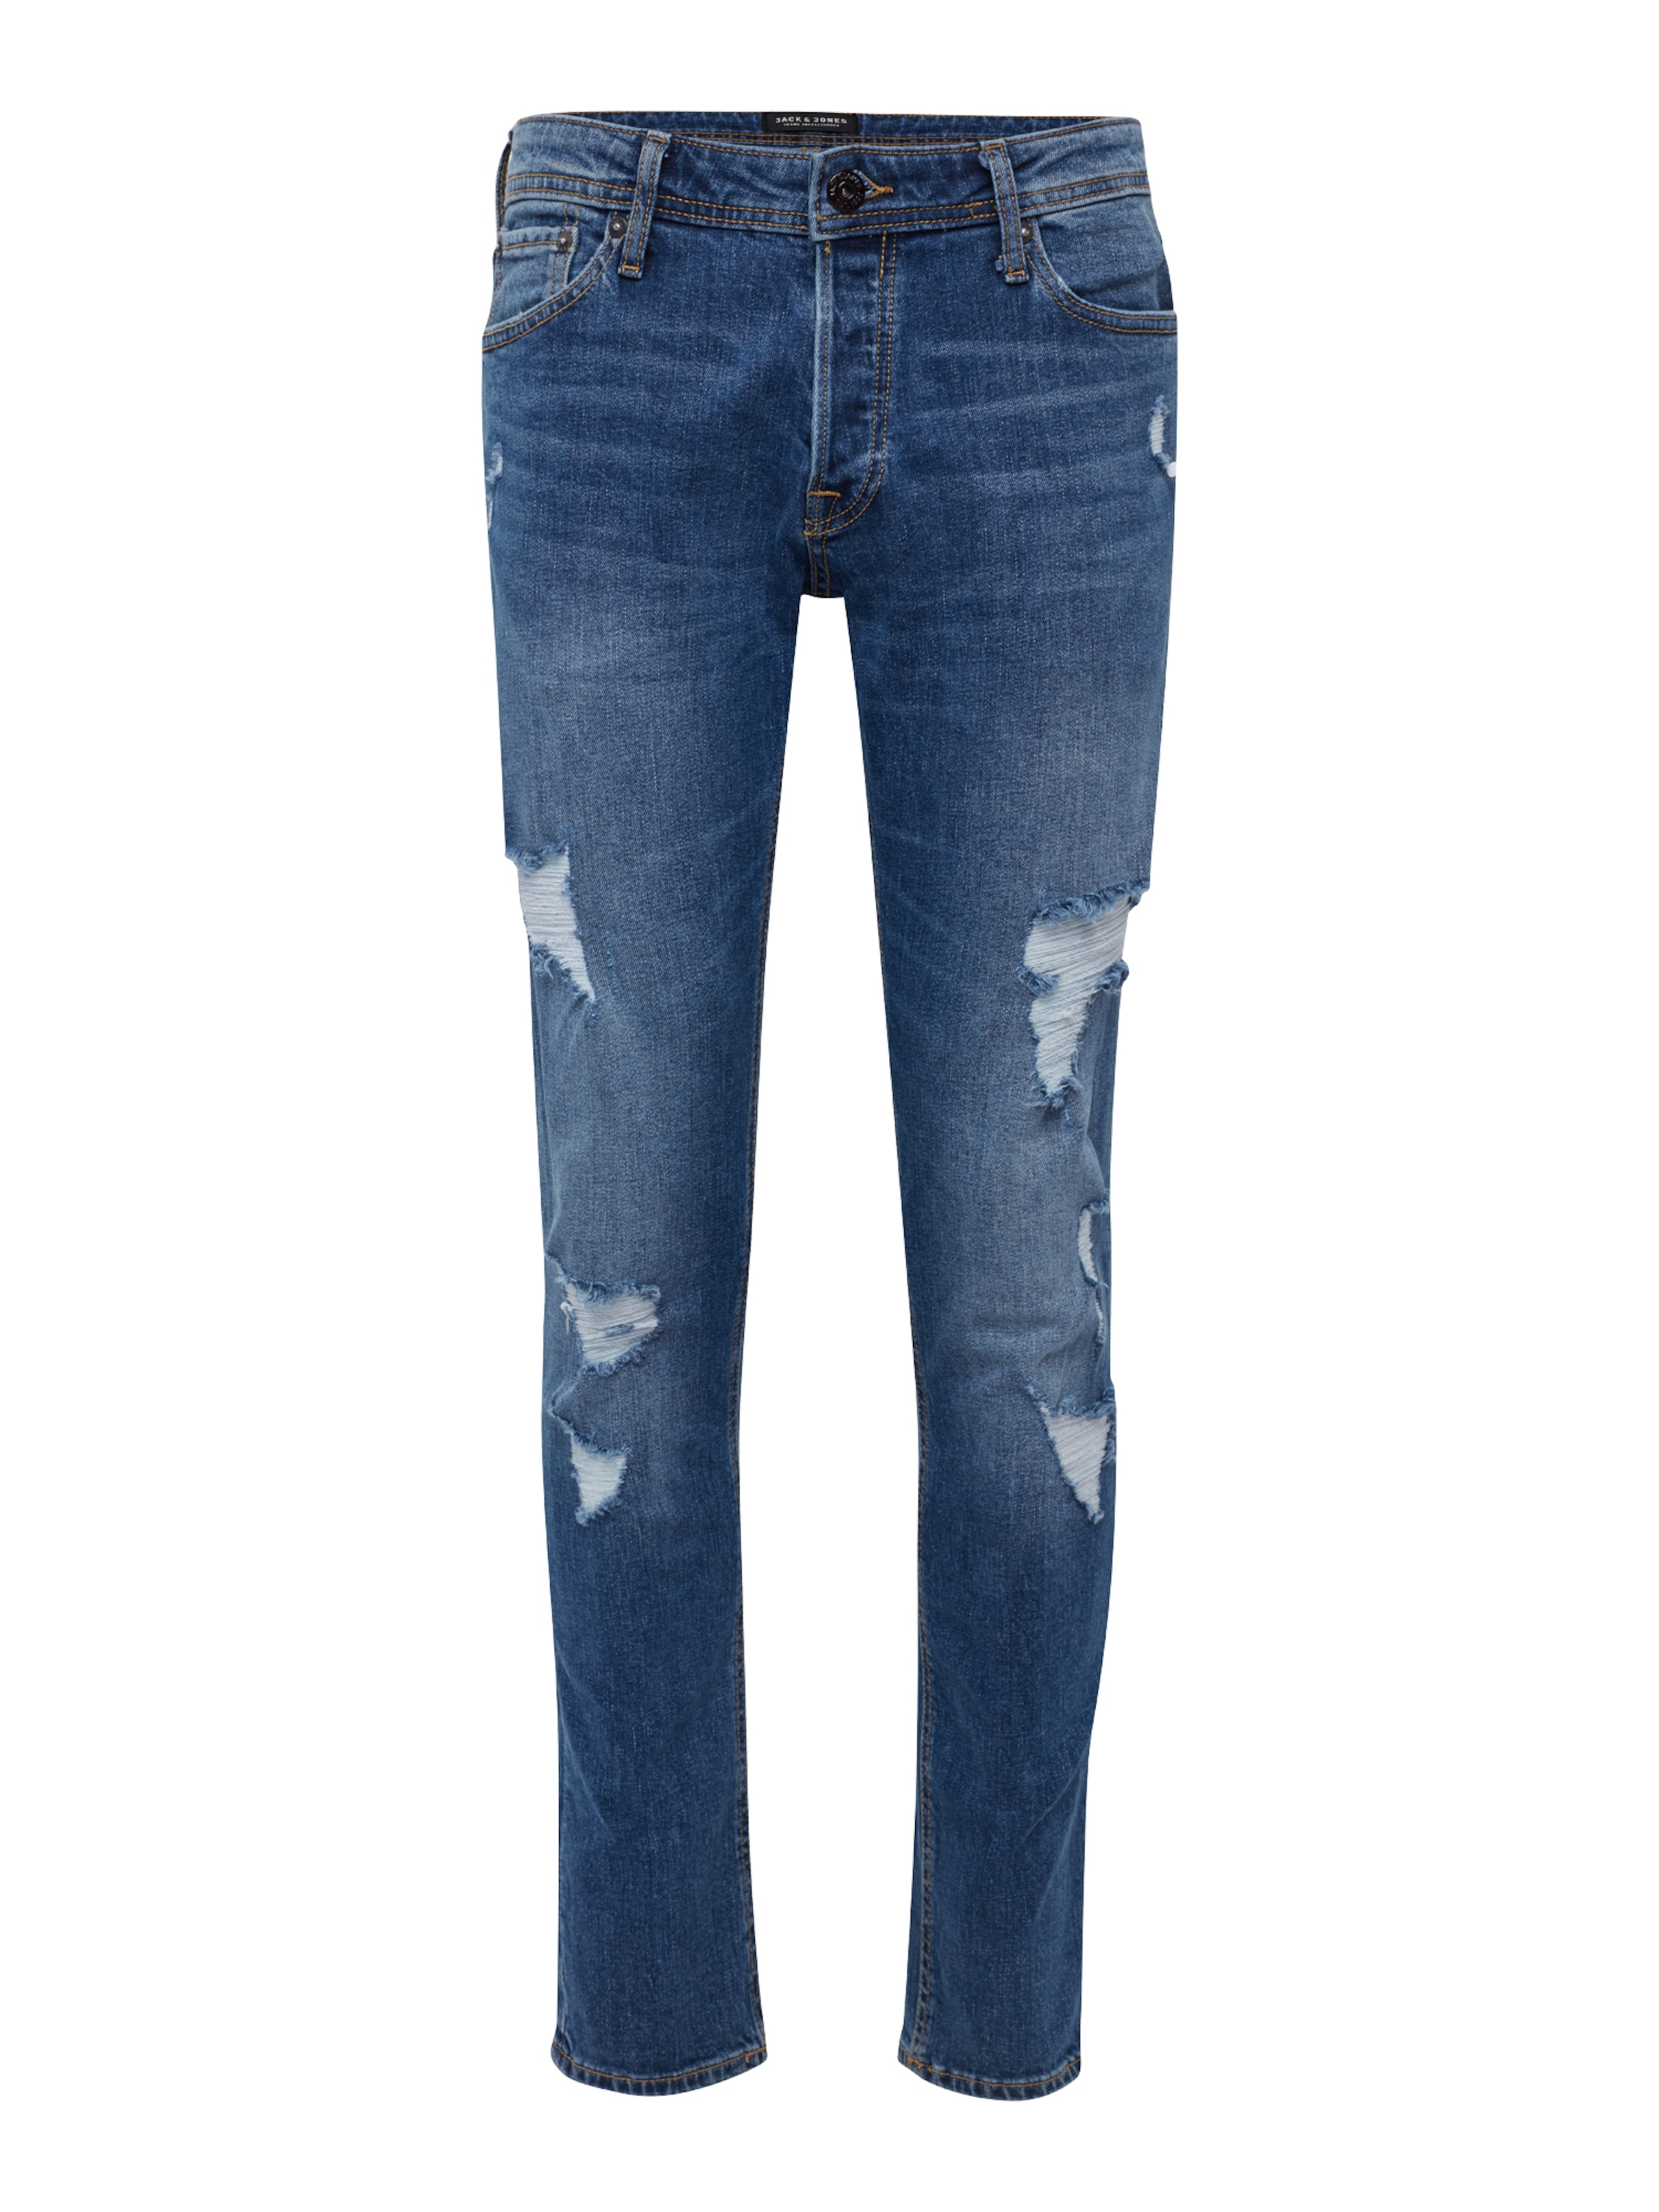 Denim 'jjiglenn Jjoriginal Am 739 Blue Jones Camp' Jeans Jackamp; In j3LA54R